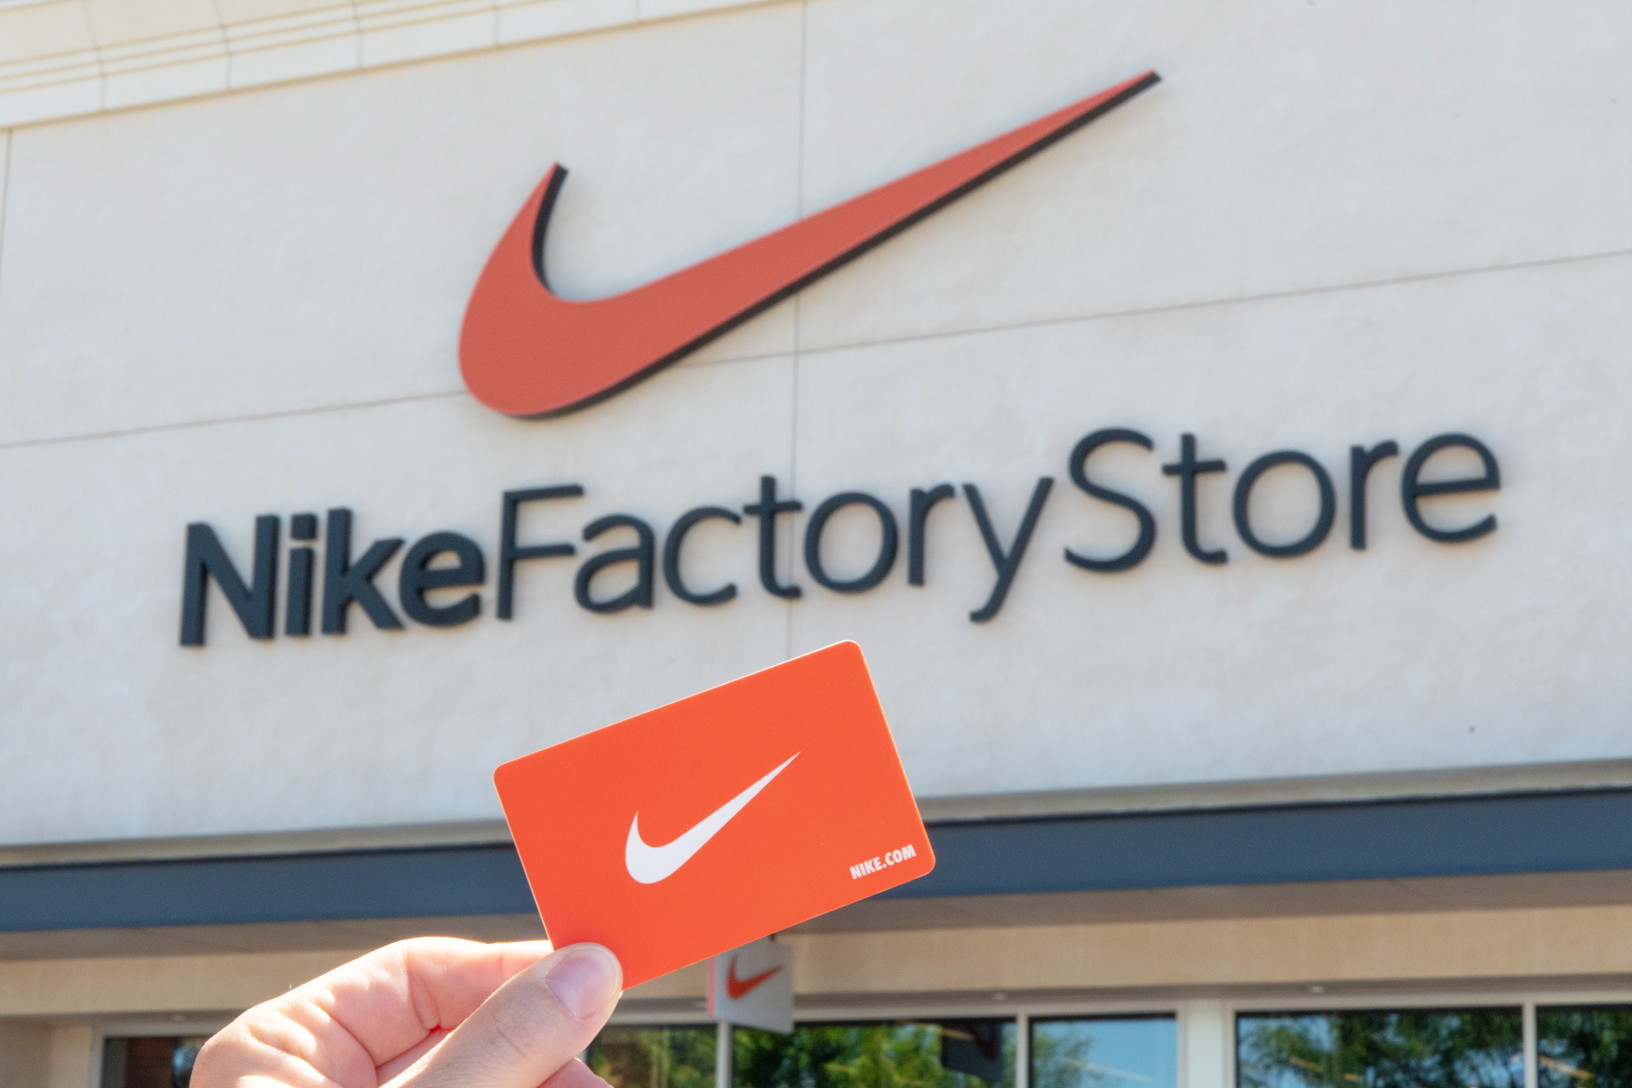 5a86a6cab49afc 33 Insanely Smart Nike Factory Store Hacks - The Krazy Coupon Lady